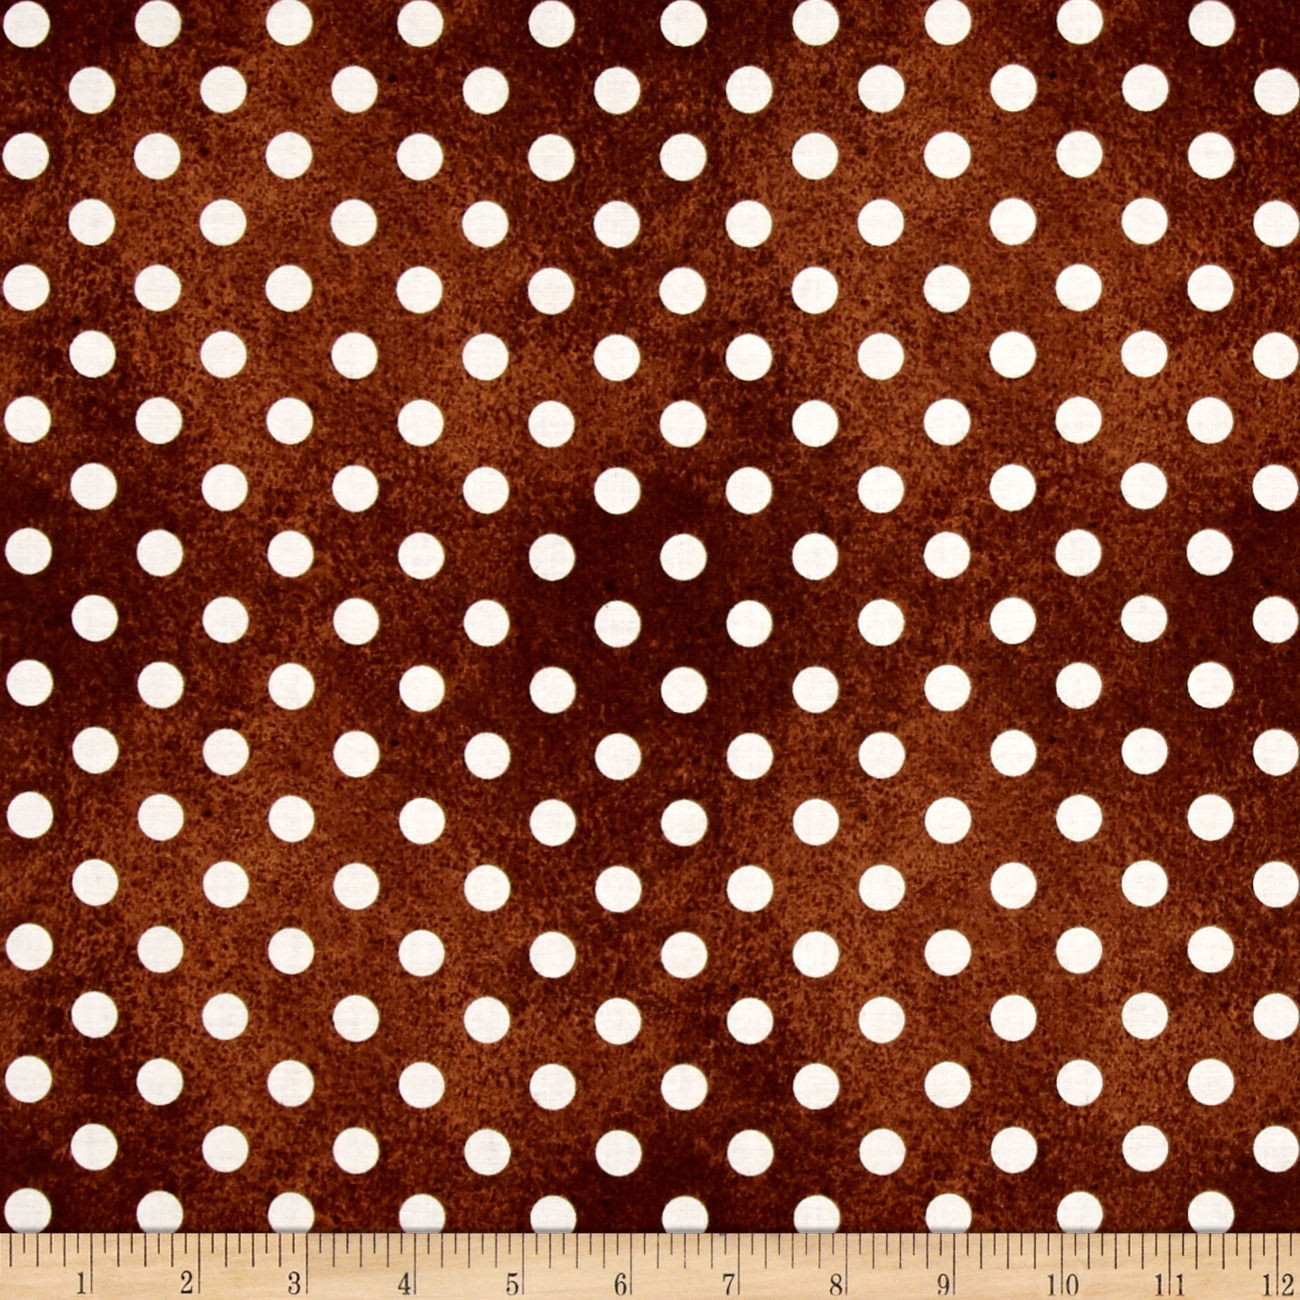 QT Fabrics Daily Grind Polka Dot Brown